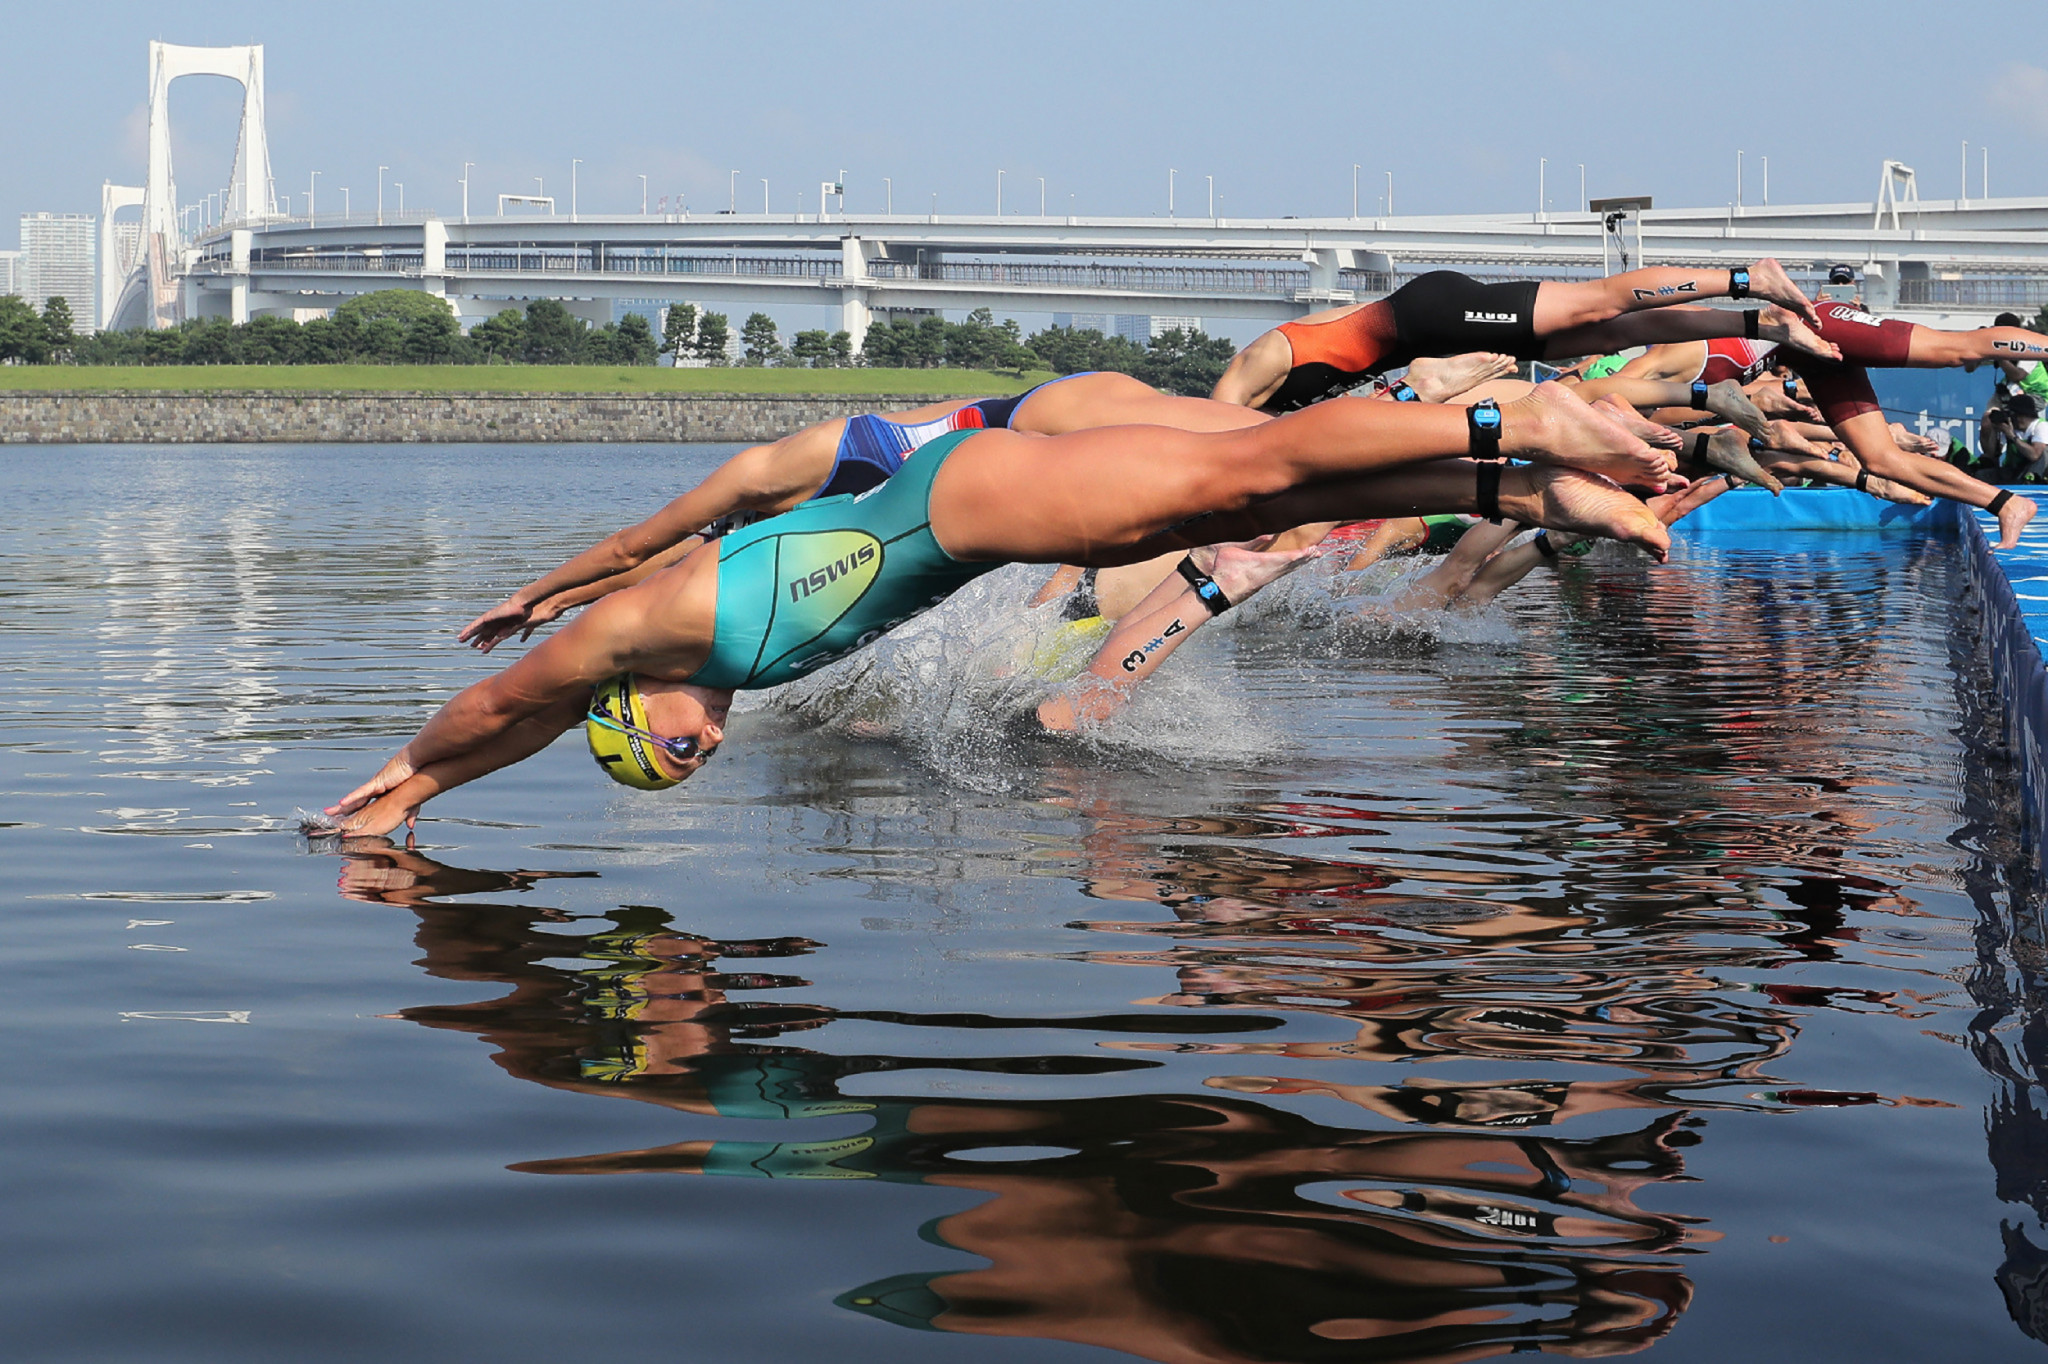 Triathlon start times are set to move forward ©Getty Images